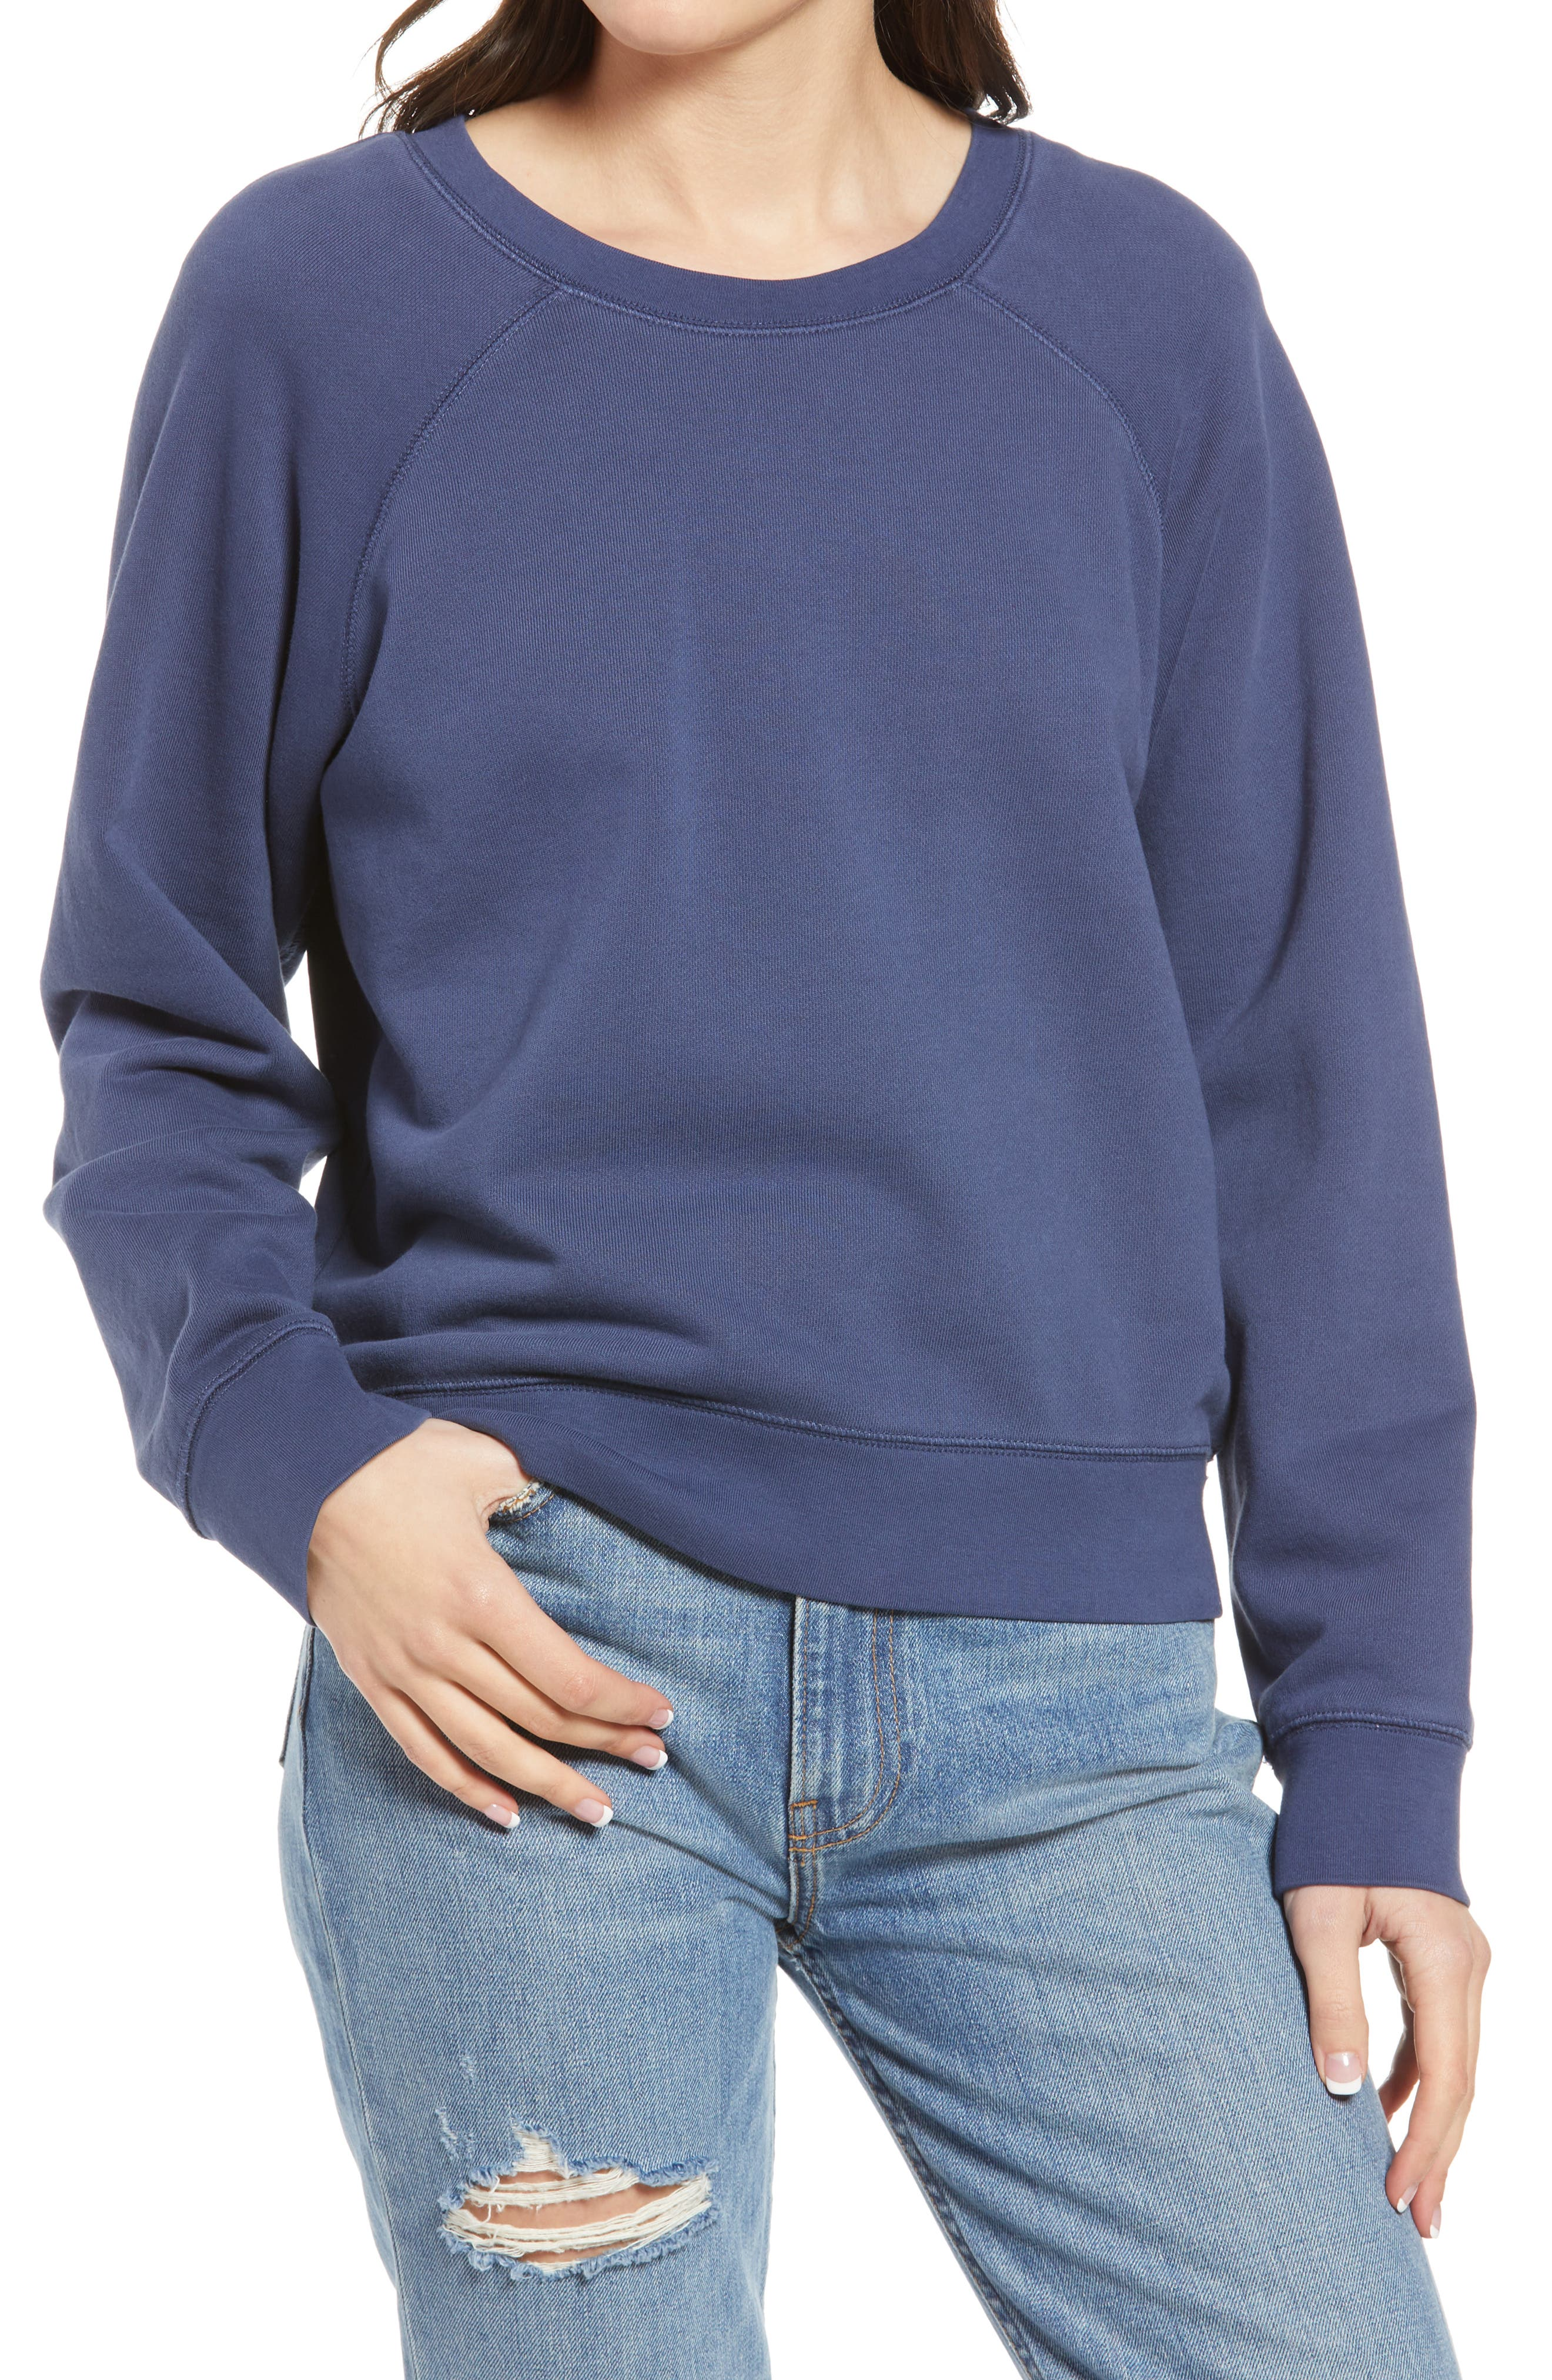 California style charcoal crew neck pullover sweatshirt USA Made